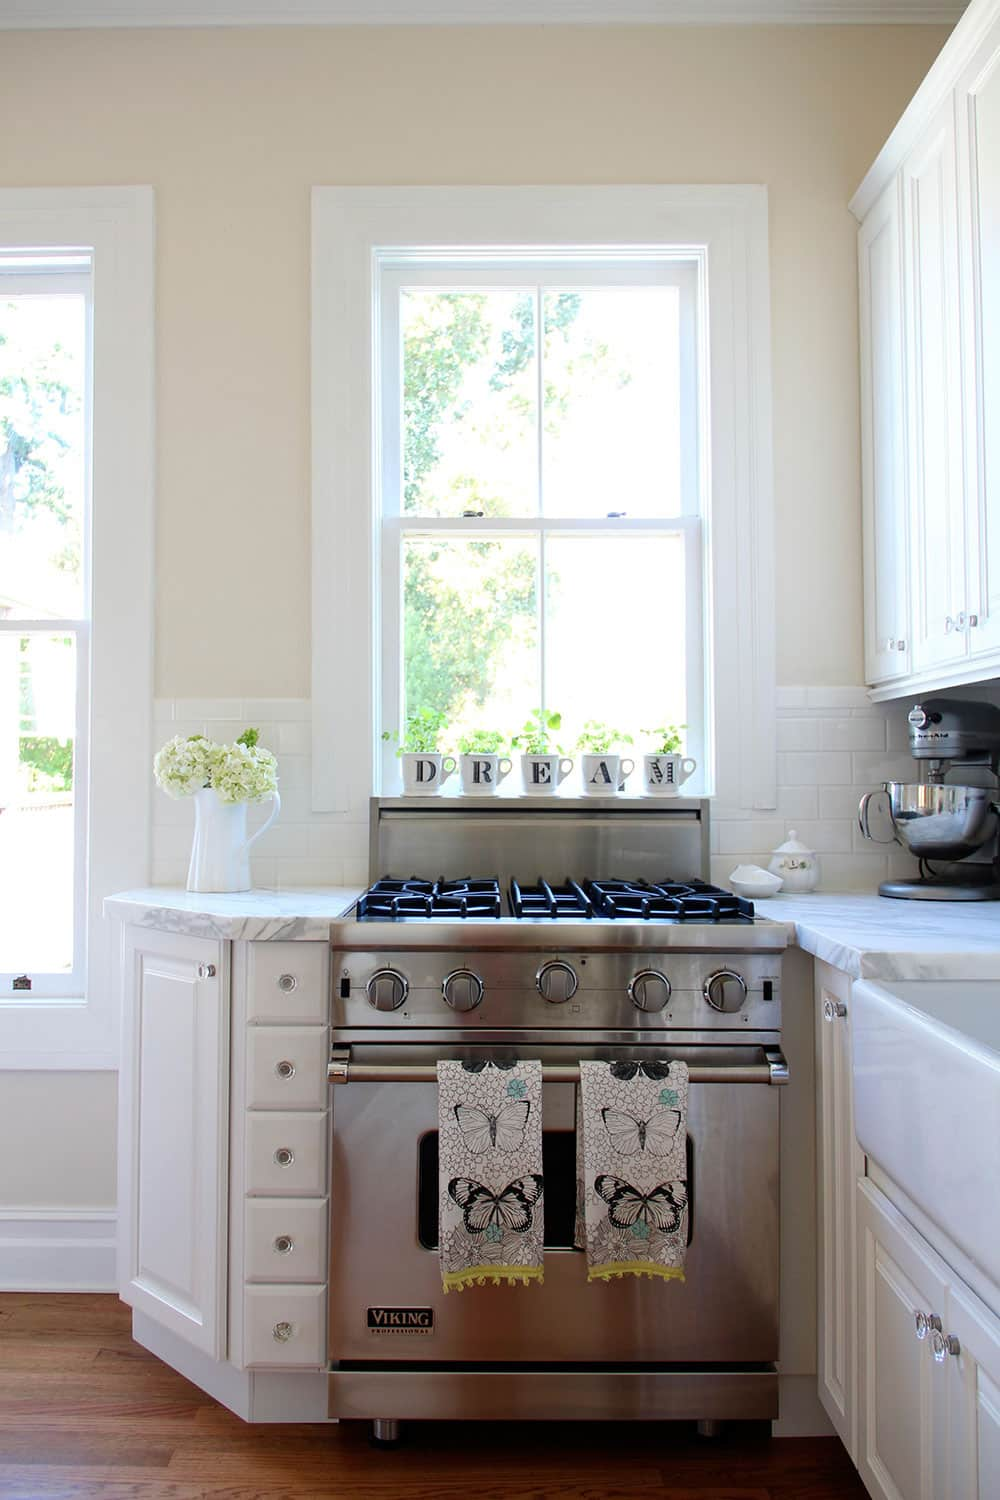 20 Paint Colors We Love in the Kitchen: gallery image 20